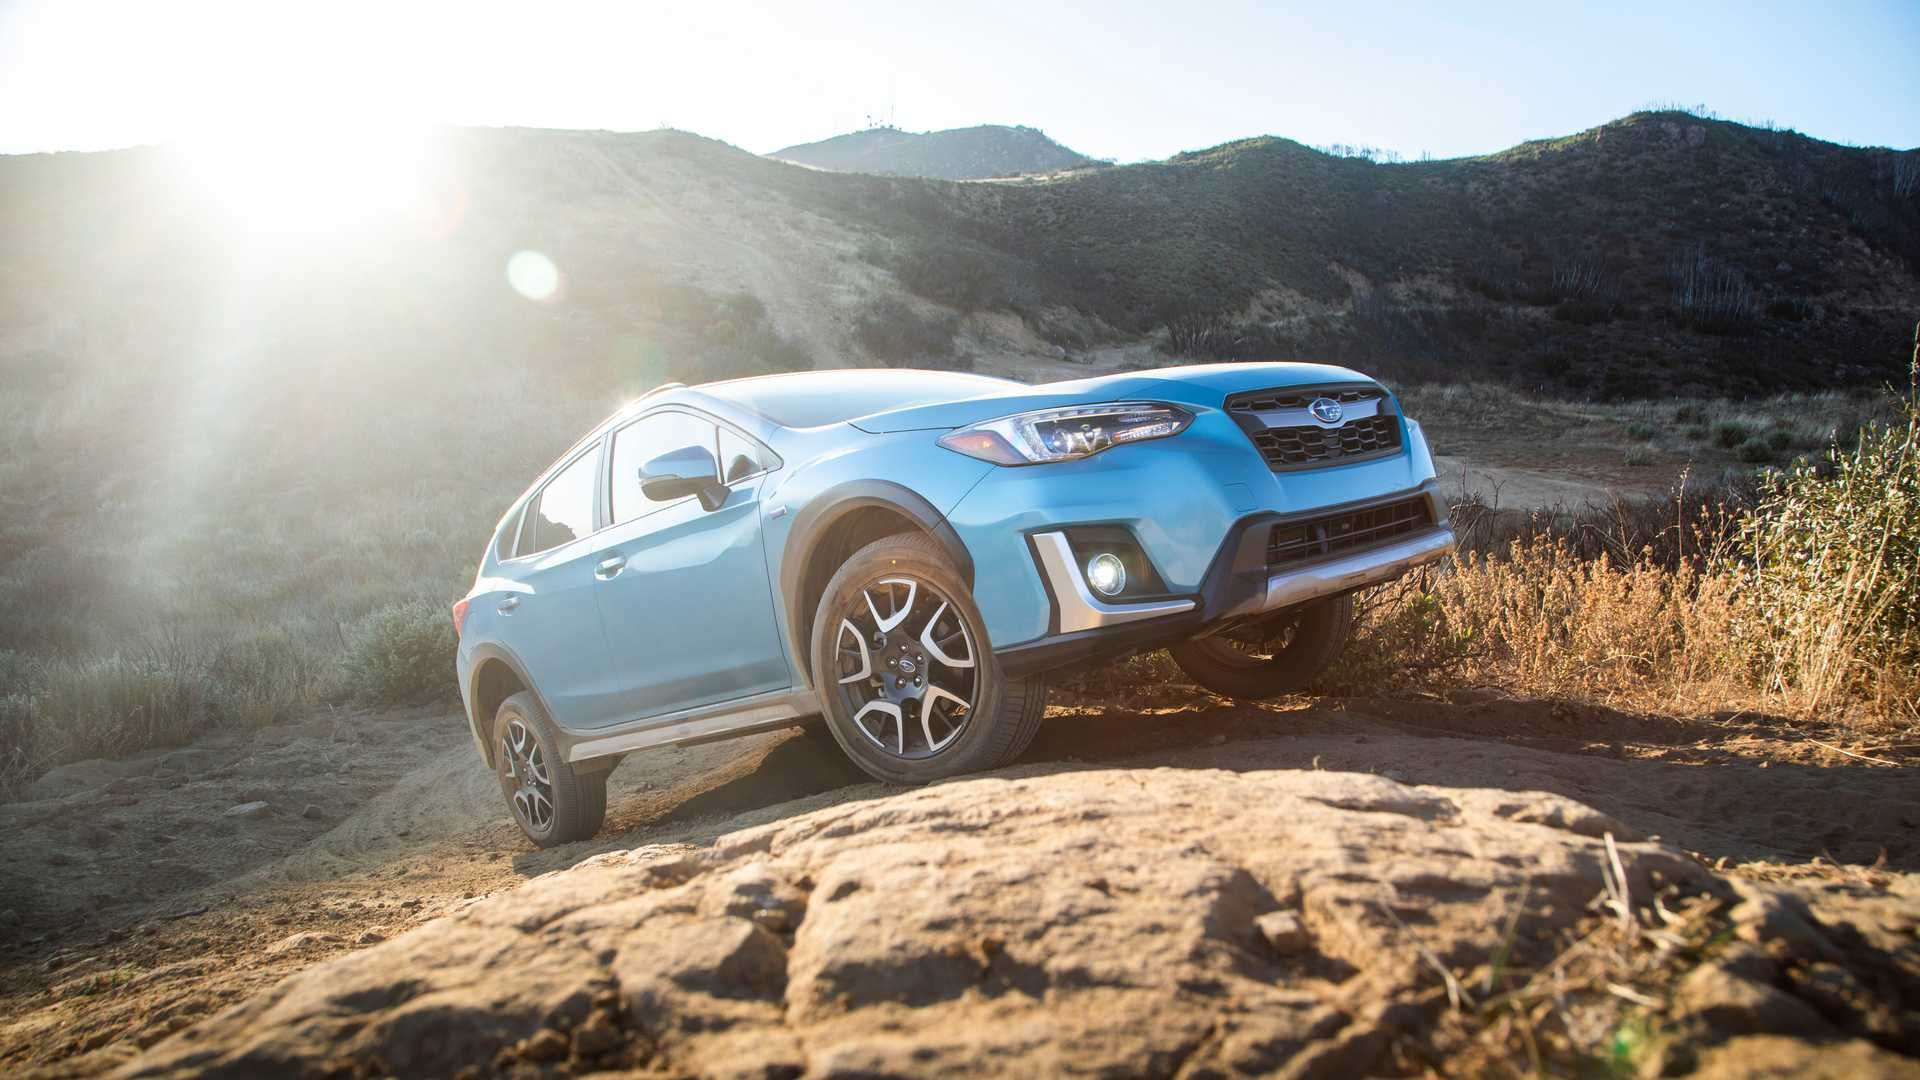 Subaru Introduces Its First Ever Plug In Hybrid Model The New Crosstrek Hybrid It Is Also Capable Off Road Subaru Subarucross Subaru Crosstrek Subaru Car